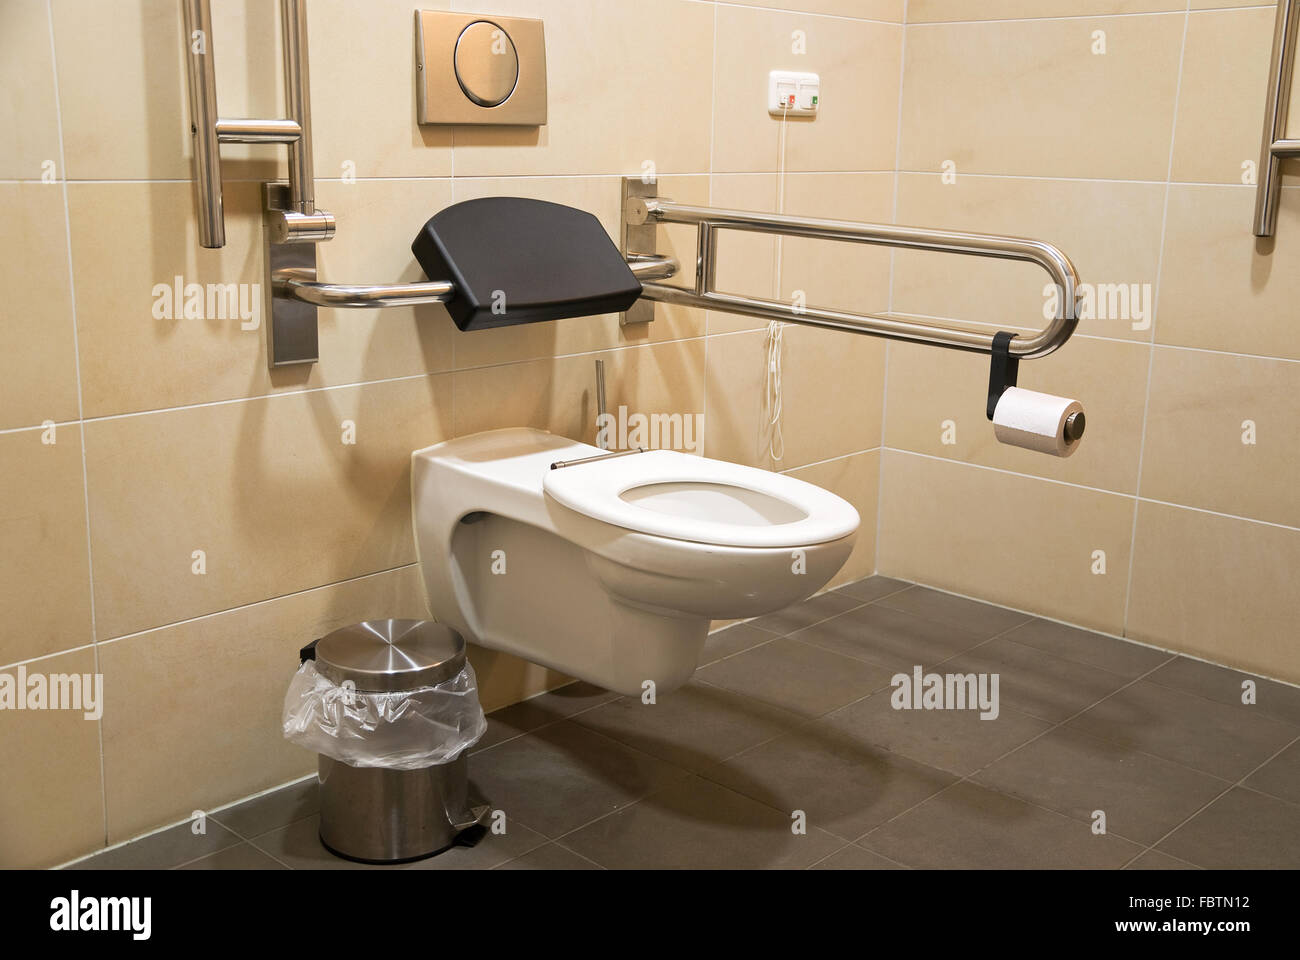 toilet for disabled people - Stock Image